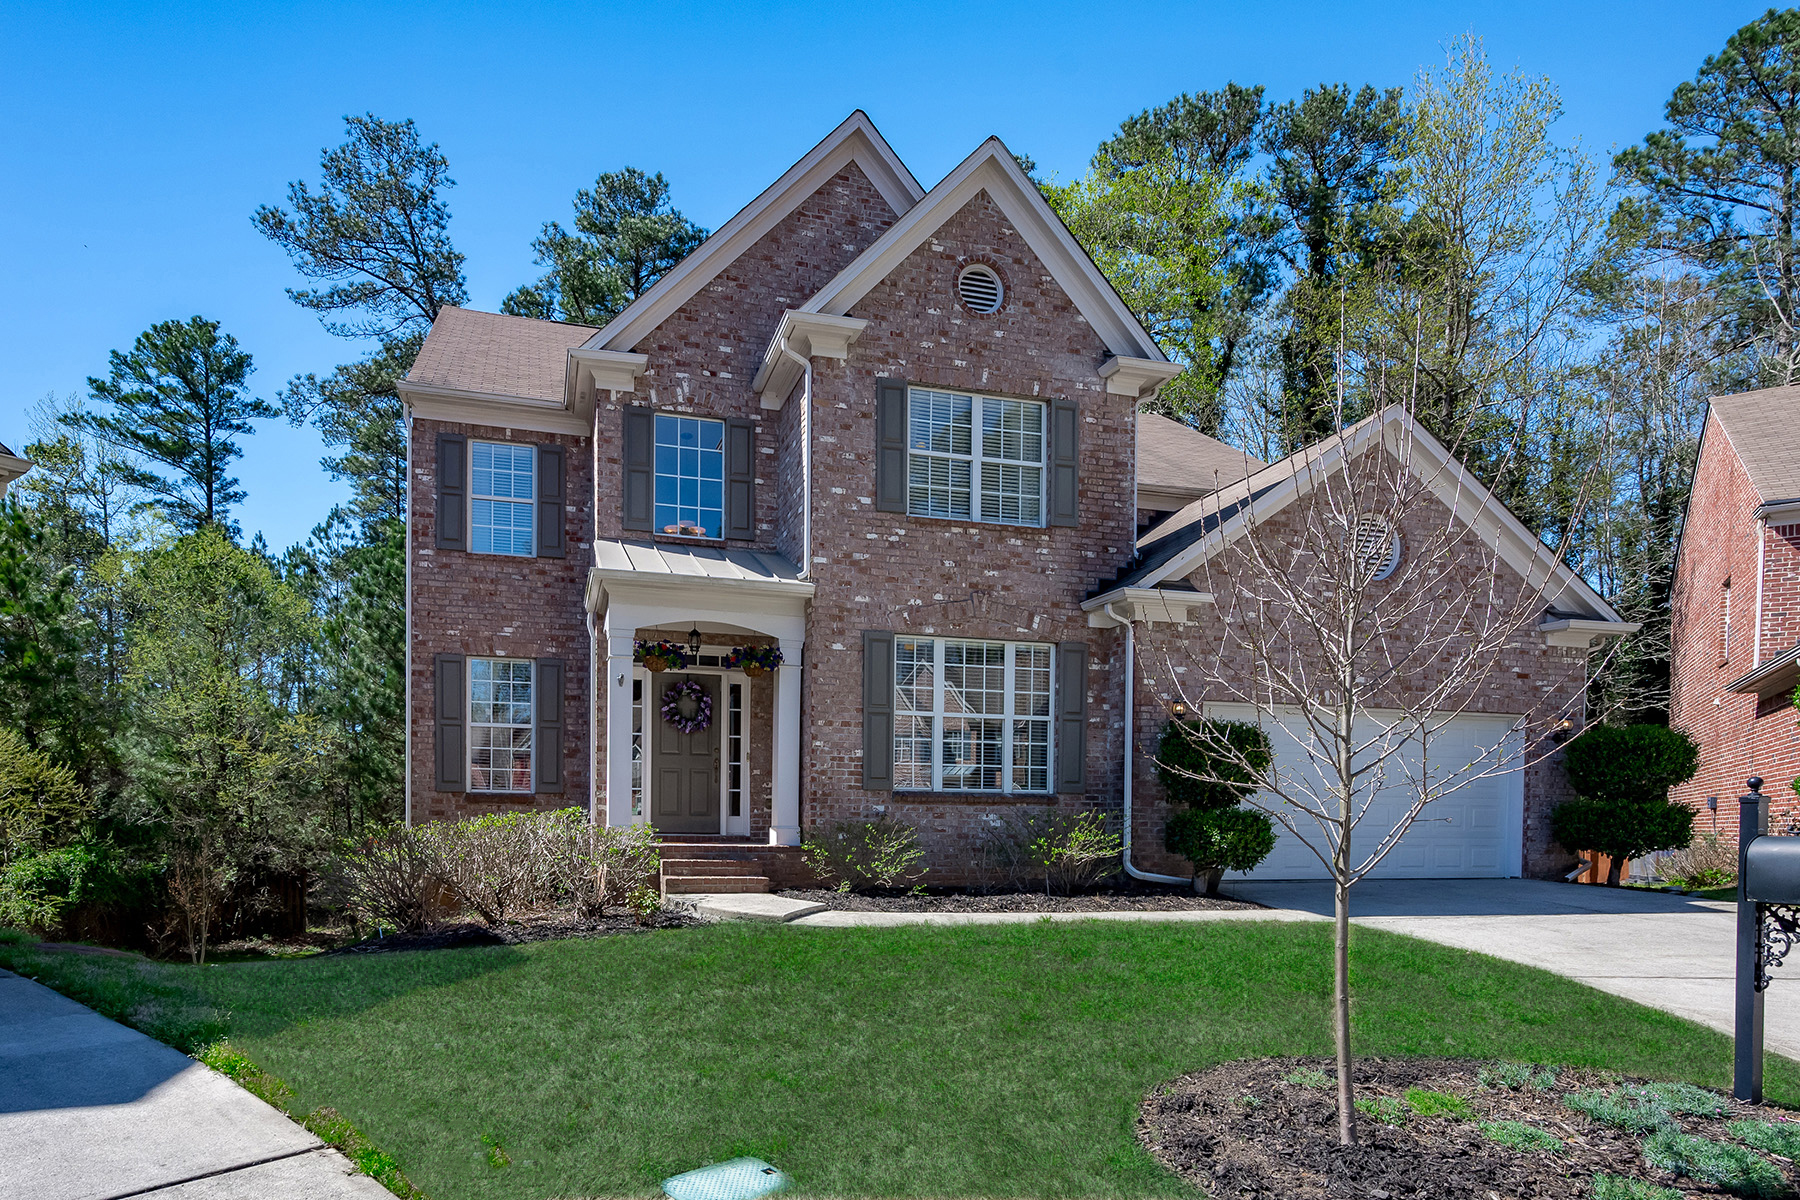 Single Family Homes for Sale at Sought after Peachtree Corners! 4146 Kingsley Park Court Peachtree Corners, Georgia 30096 United States